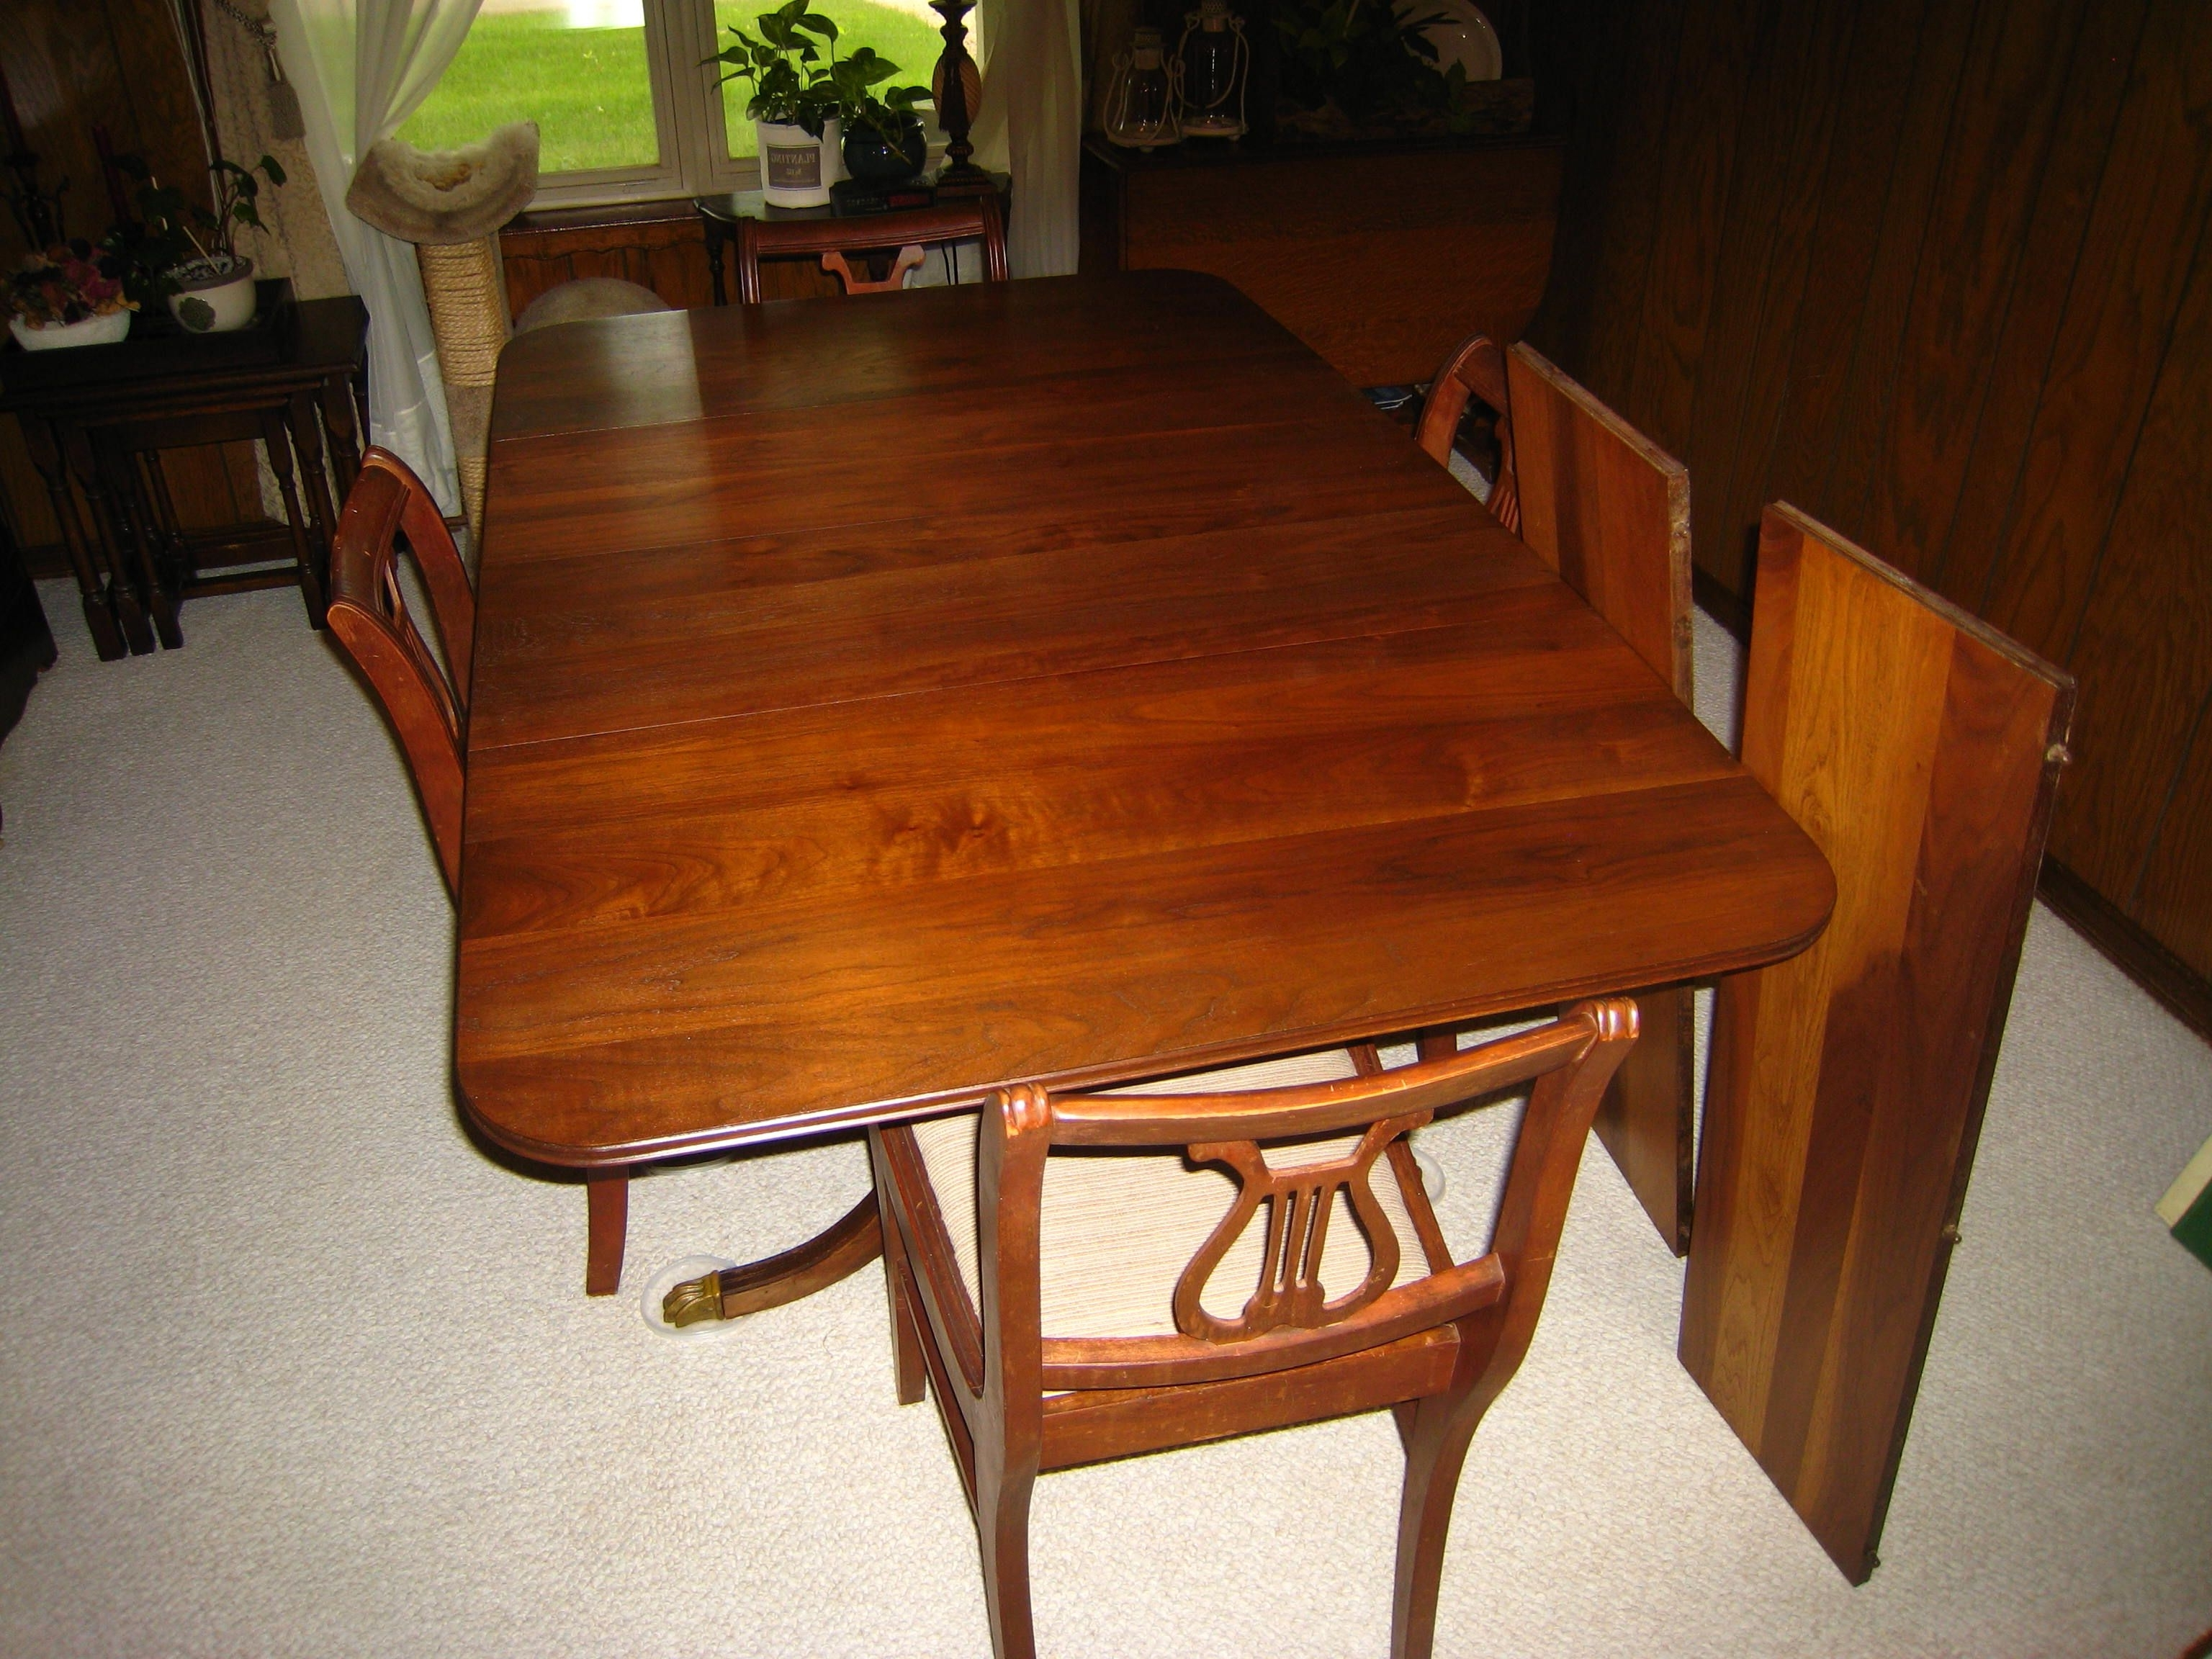 Banded Mahogany Duncan Phyfe Style Dining Table W/ Brass Claw Feet Regarding Well Known Mahogany Dining Tables And 4 Chairs (Gallery 2 of 25)